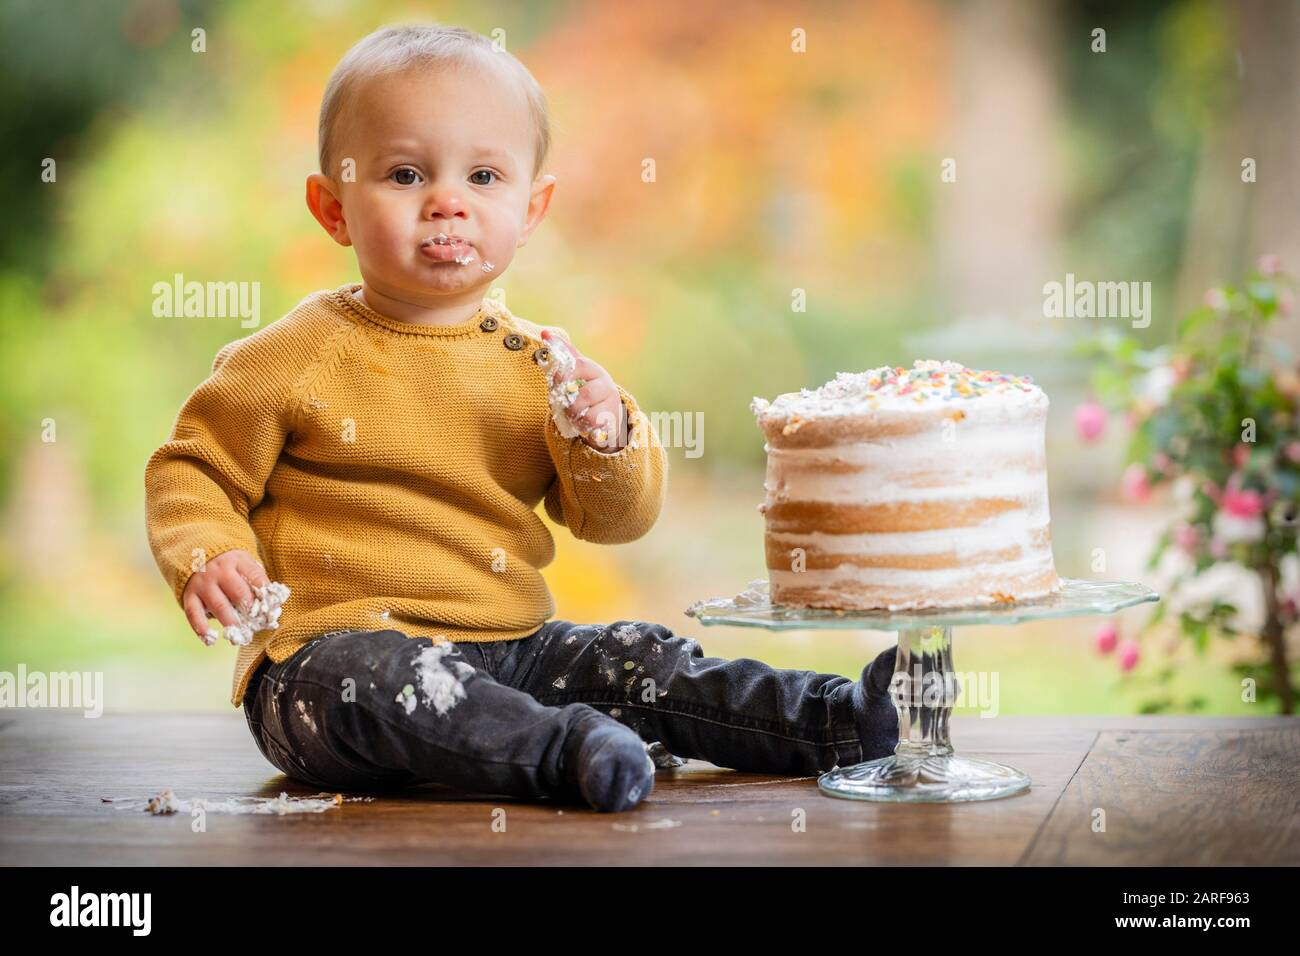 Astonishing Gross And Cake Stock Photos Gross And Cake Stock Images Alamy Personalised Birthday Cards Arneslily Jamesorg